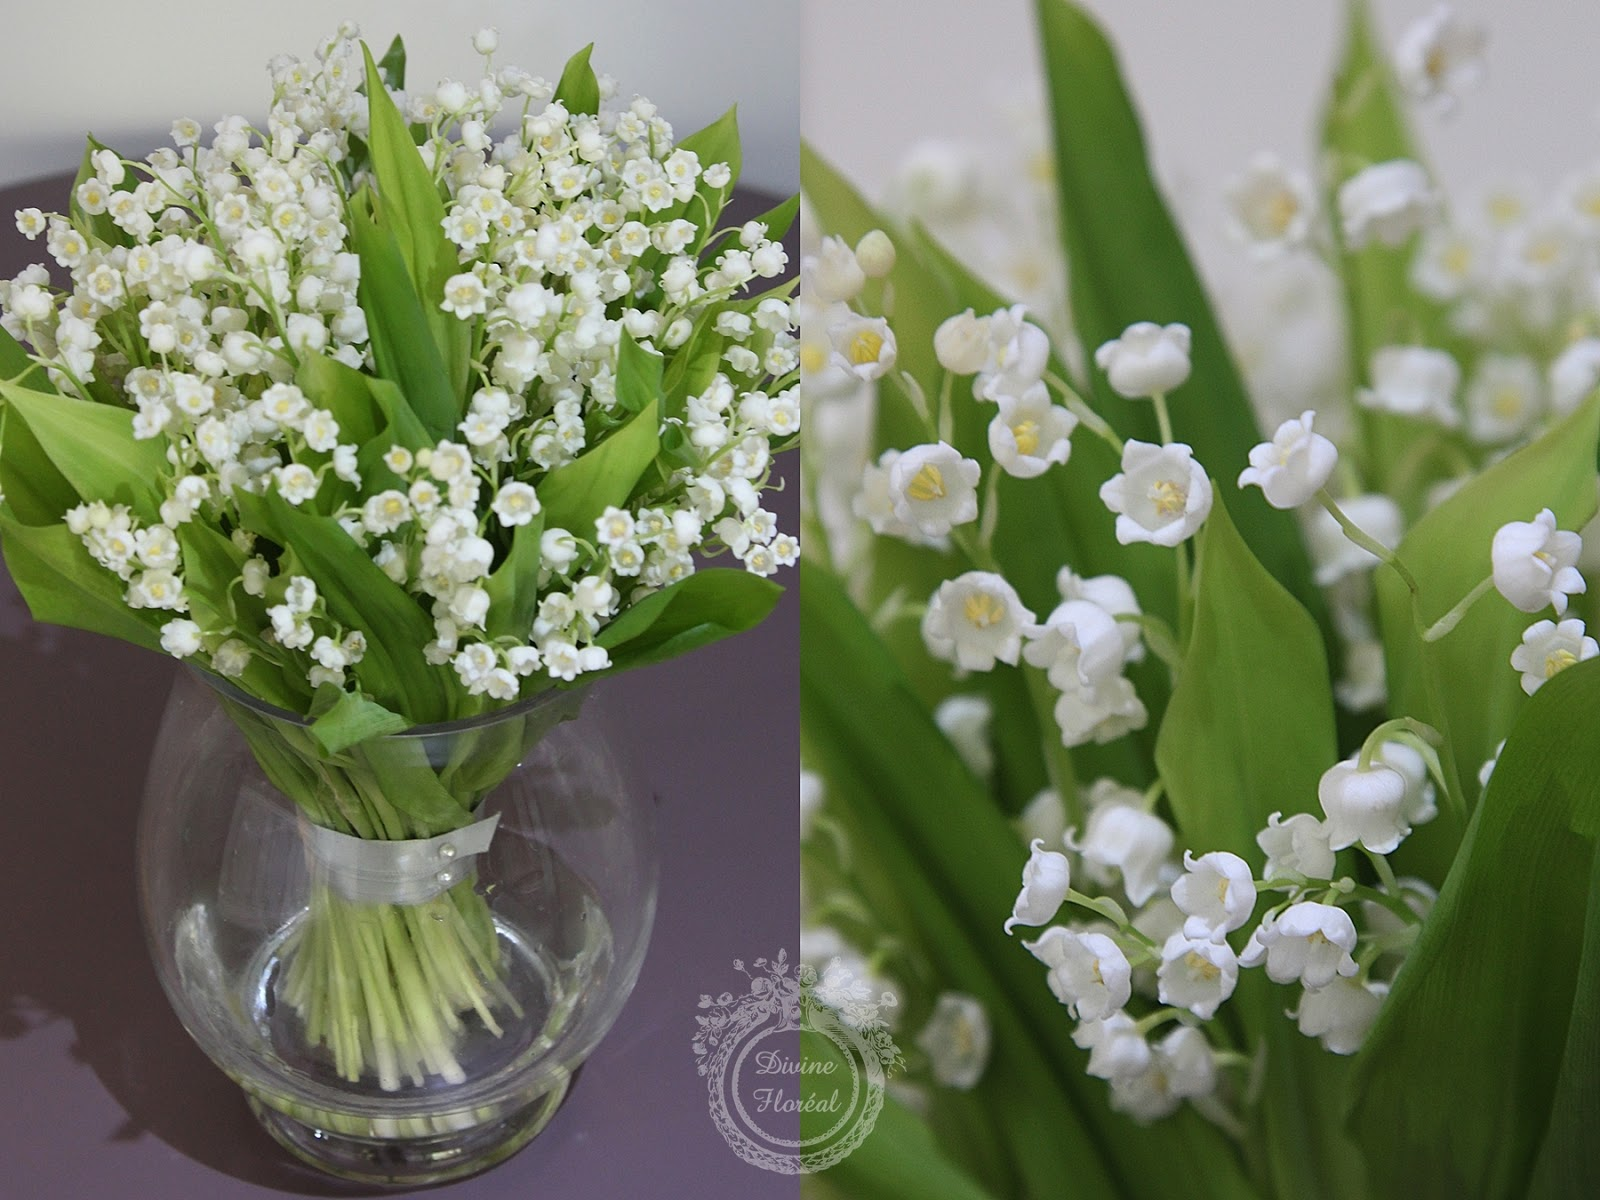 Divine Floréal: Lily Of The Valley Bouquet And Purple Wreath